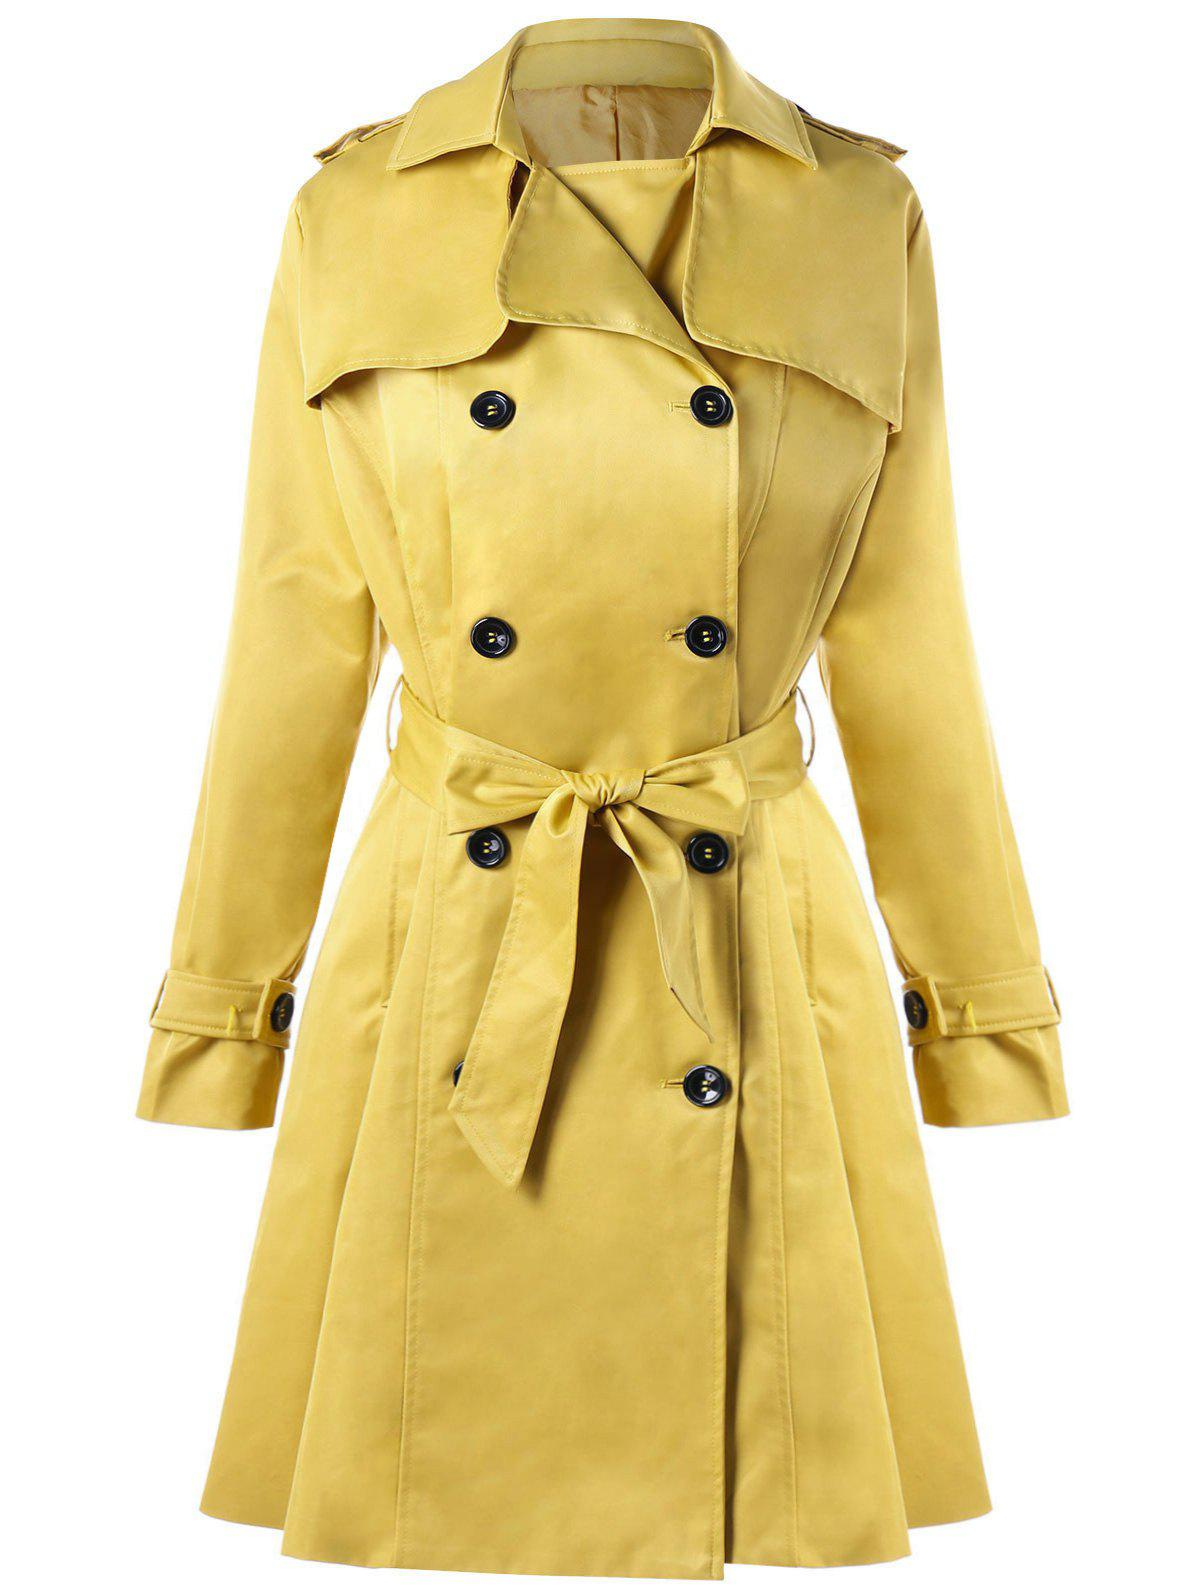 Tie Belt Double Breasted Trench Coat slim double breasted tied belt trench coat